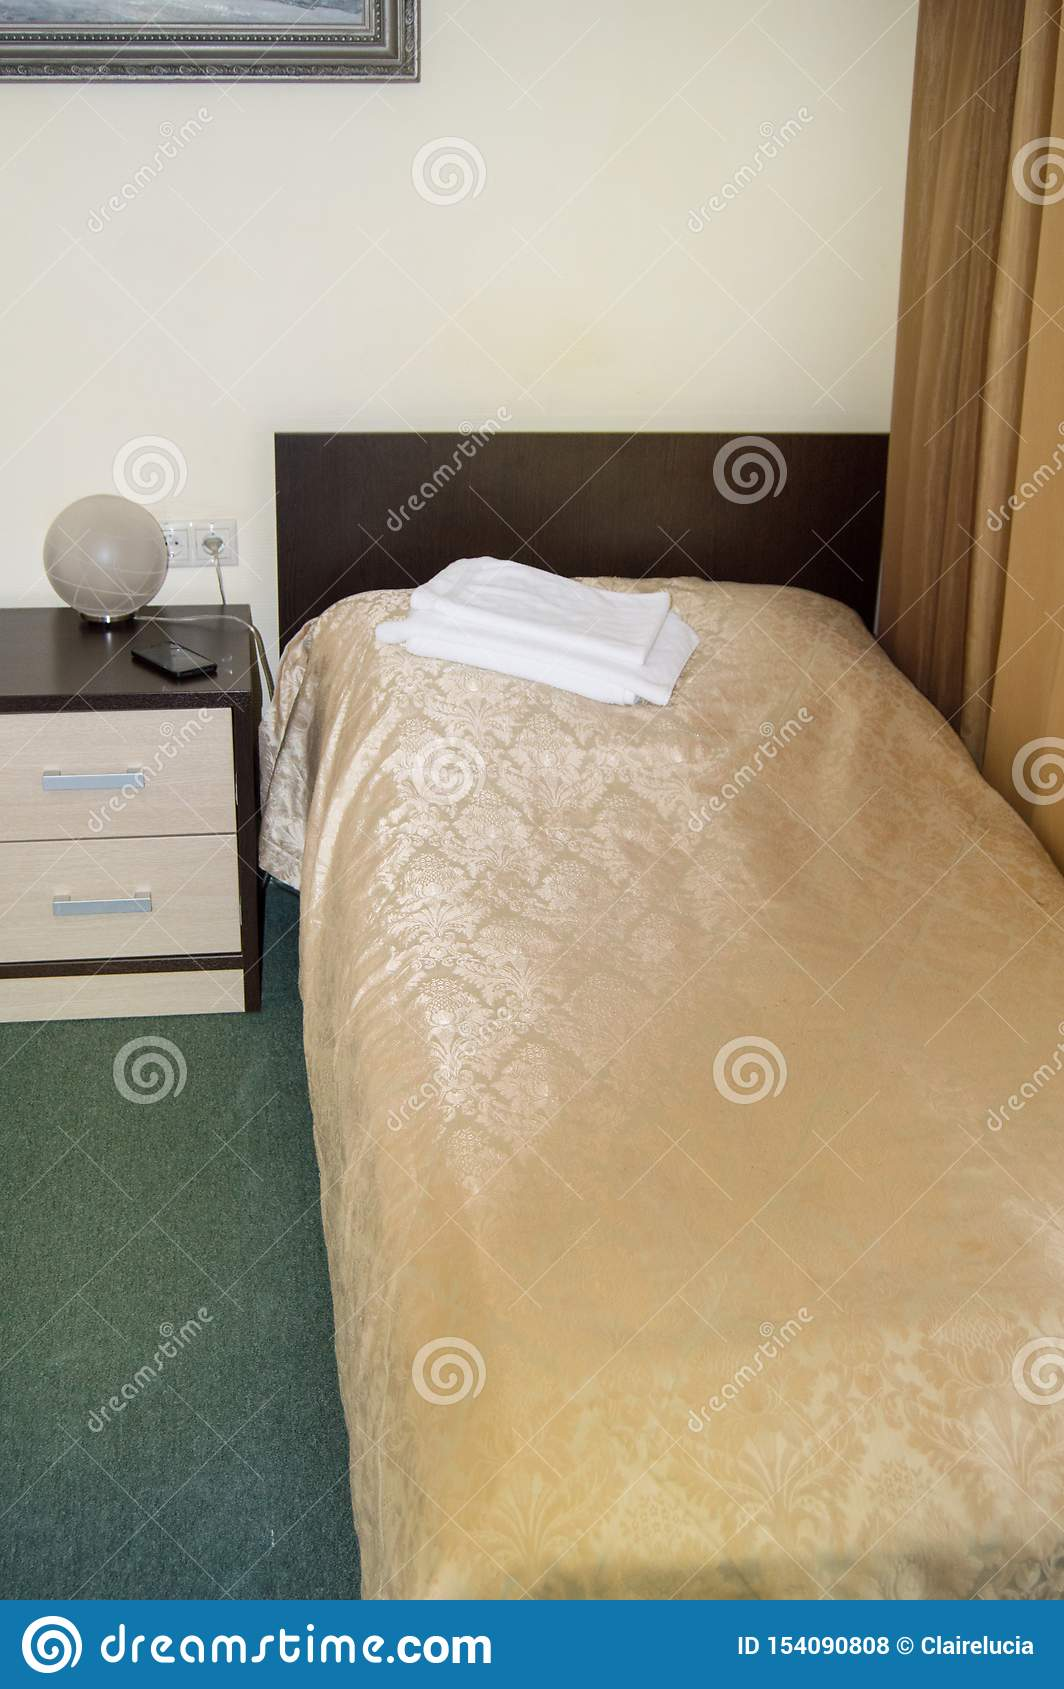 Vertical shot of the interior of the hotel bedroom with an empty single bed with wooden headboard and bedside table and towels on